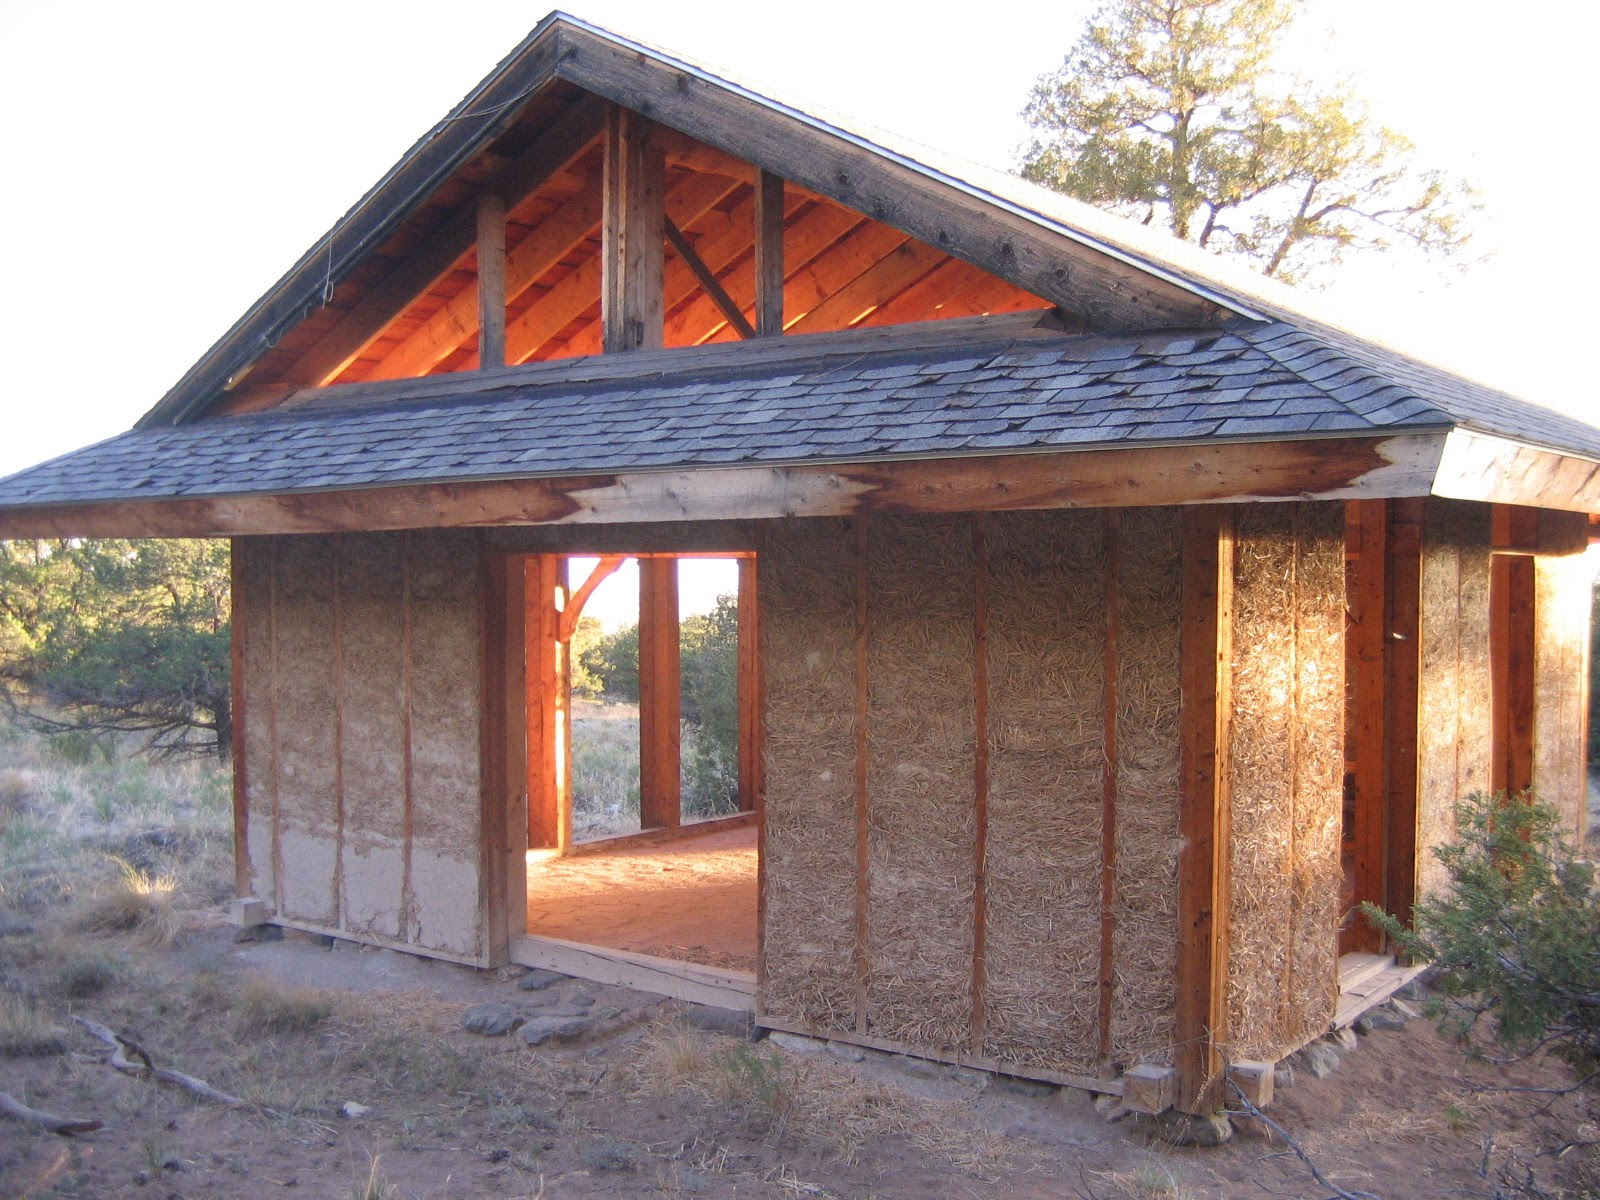 Timberframe and straw clay house in crestone colorado click to enlarge